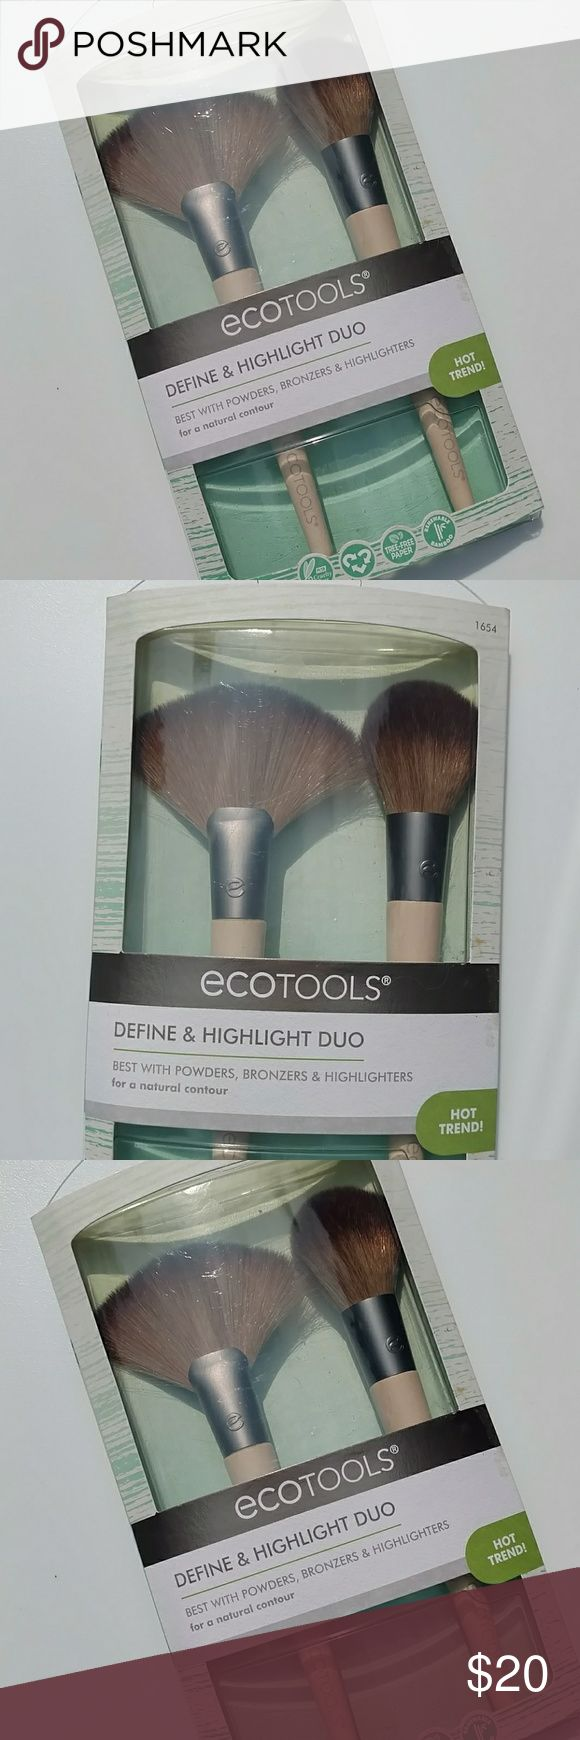 Define and highlight duo ecotools Define and highlight duo by ecotools. New with box never tested or used. No trades. Fast shipping Sephora Makeup Brushes & Tools